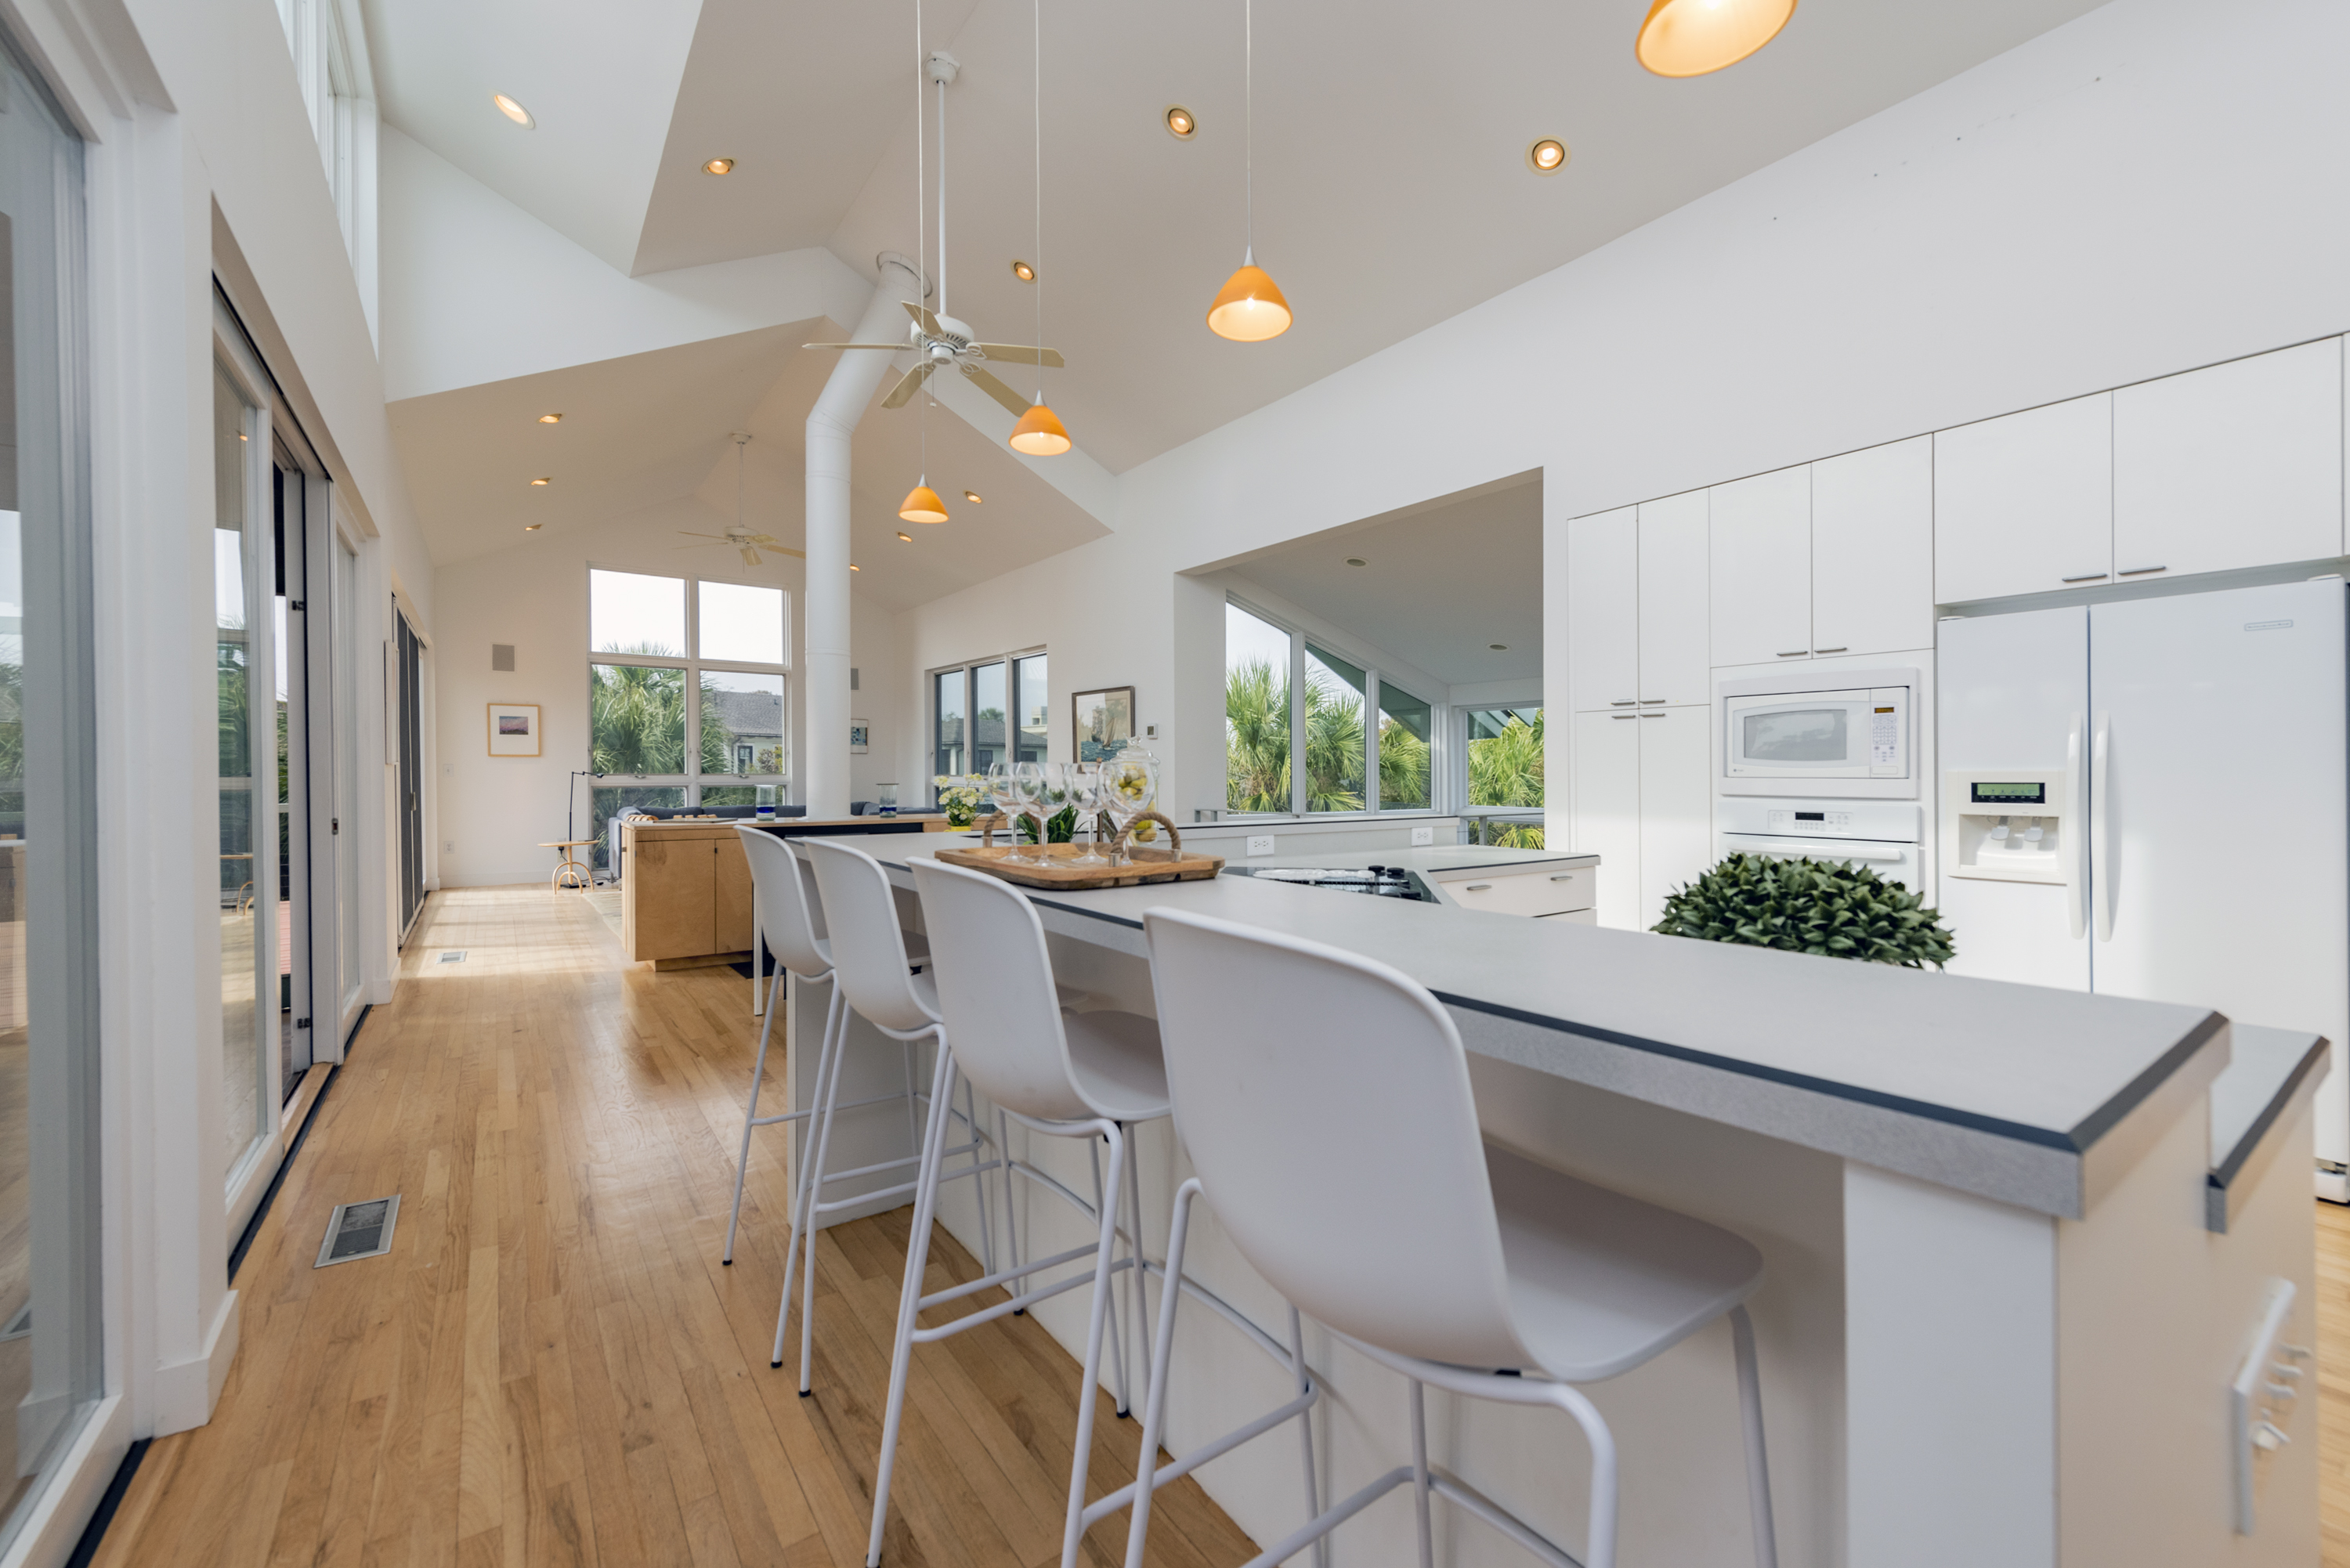 Reverse Floor plan with large, open kitchen on upper level